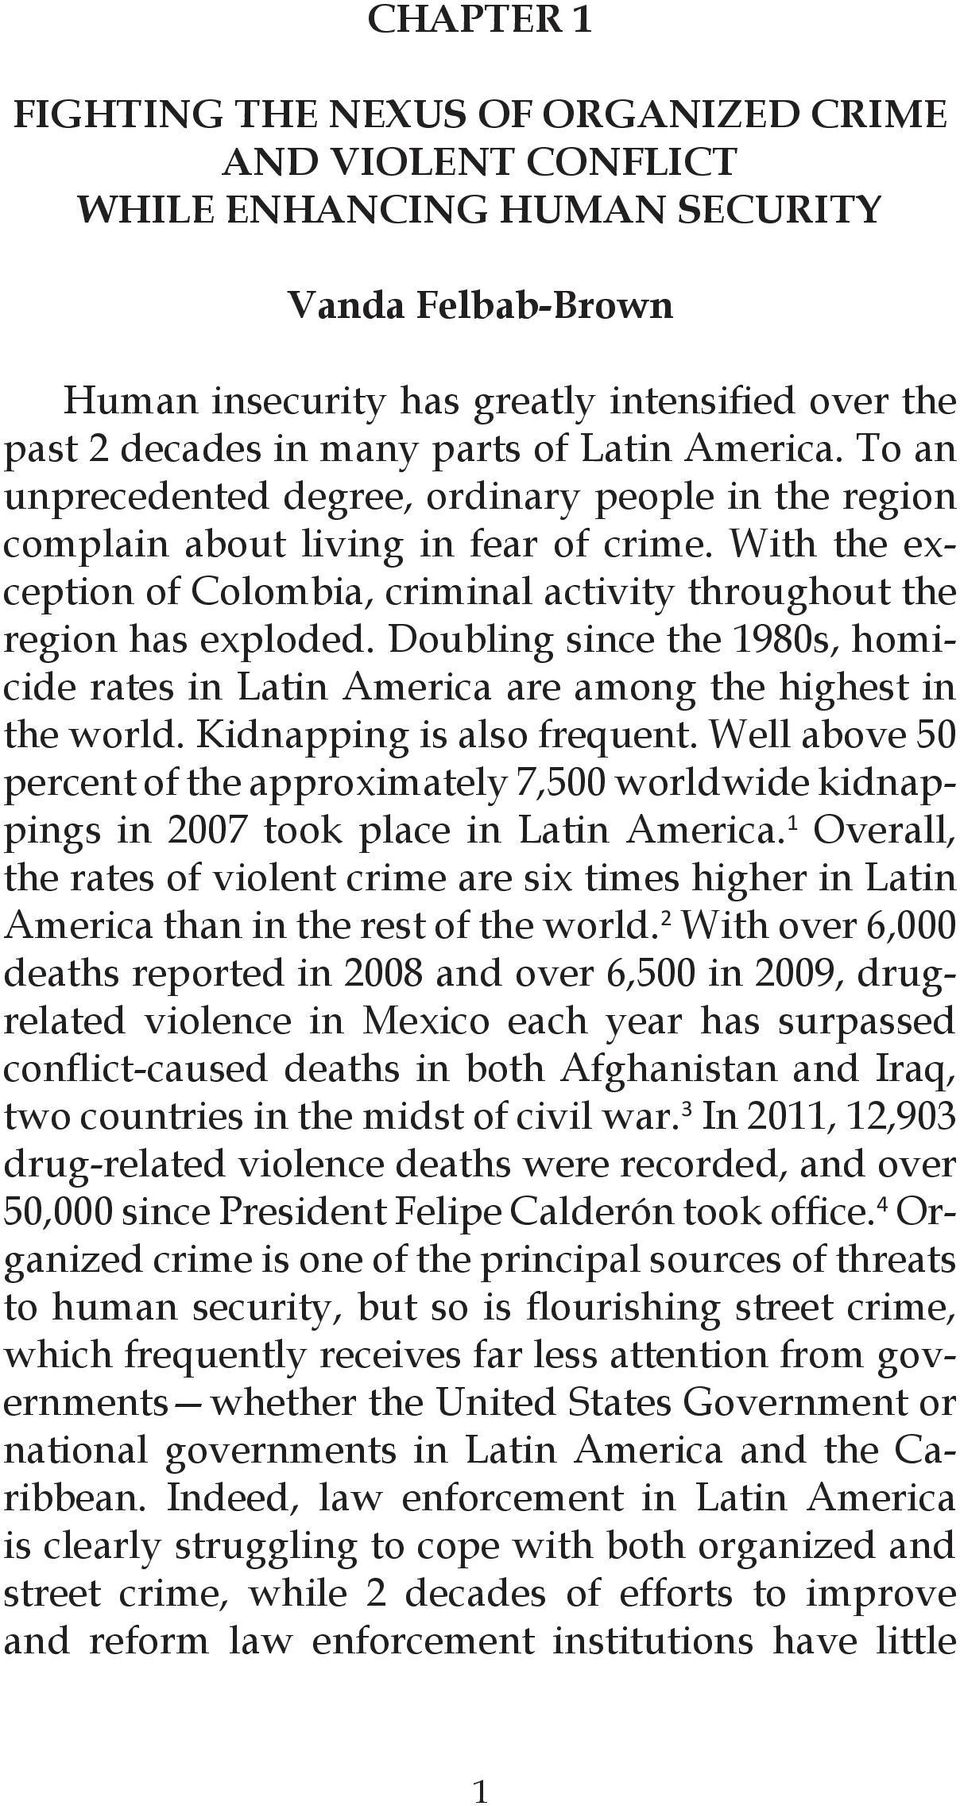 With the exception of Colombia, criminal activity throughout the region has exploded. Doubling since the 1980s, homicide rates in Latin America are among the highest in the world.